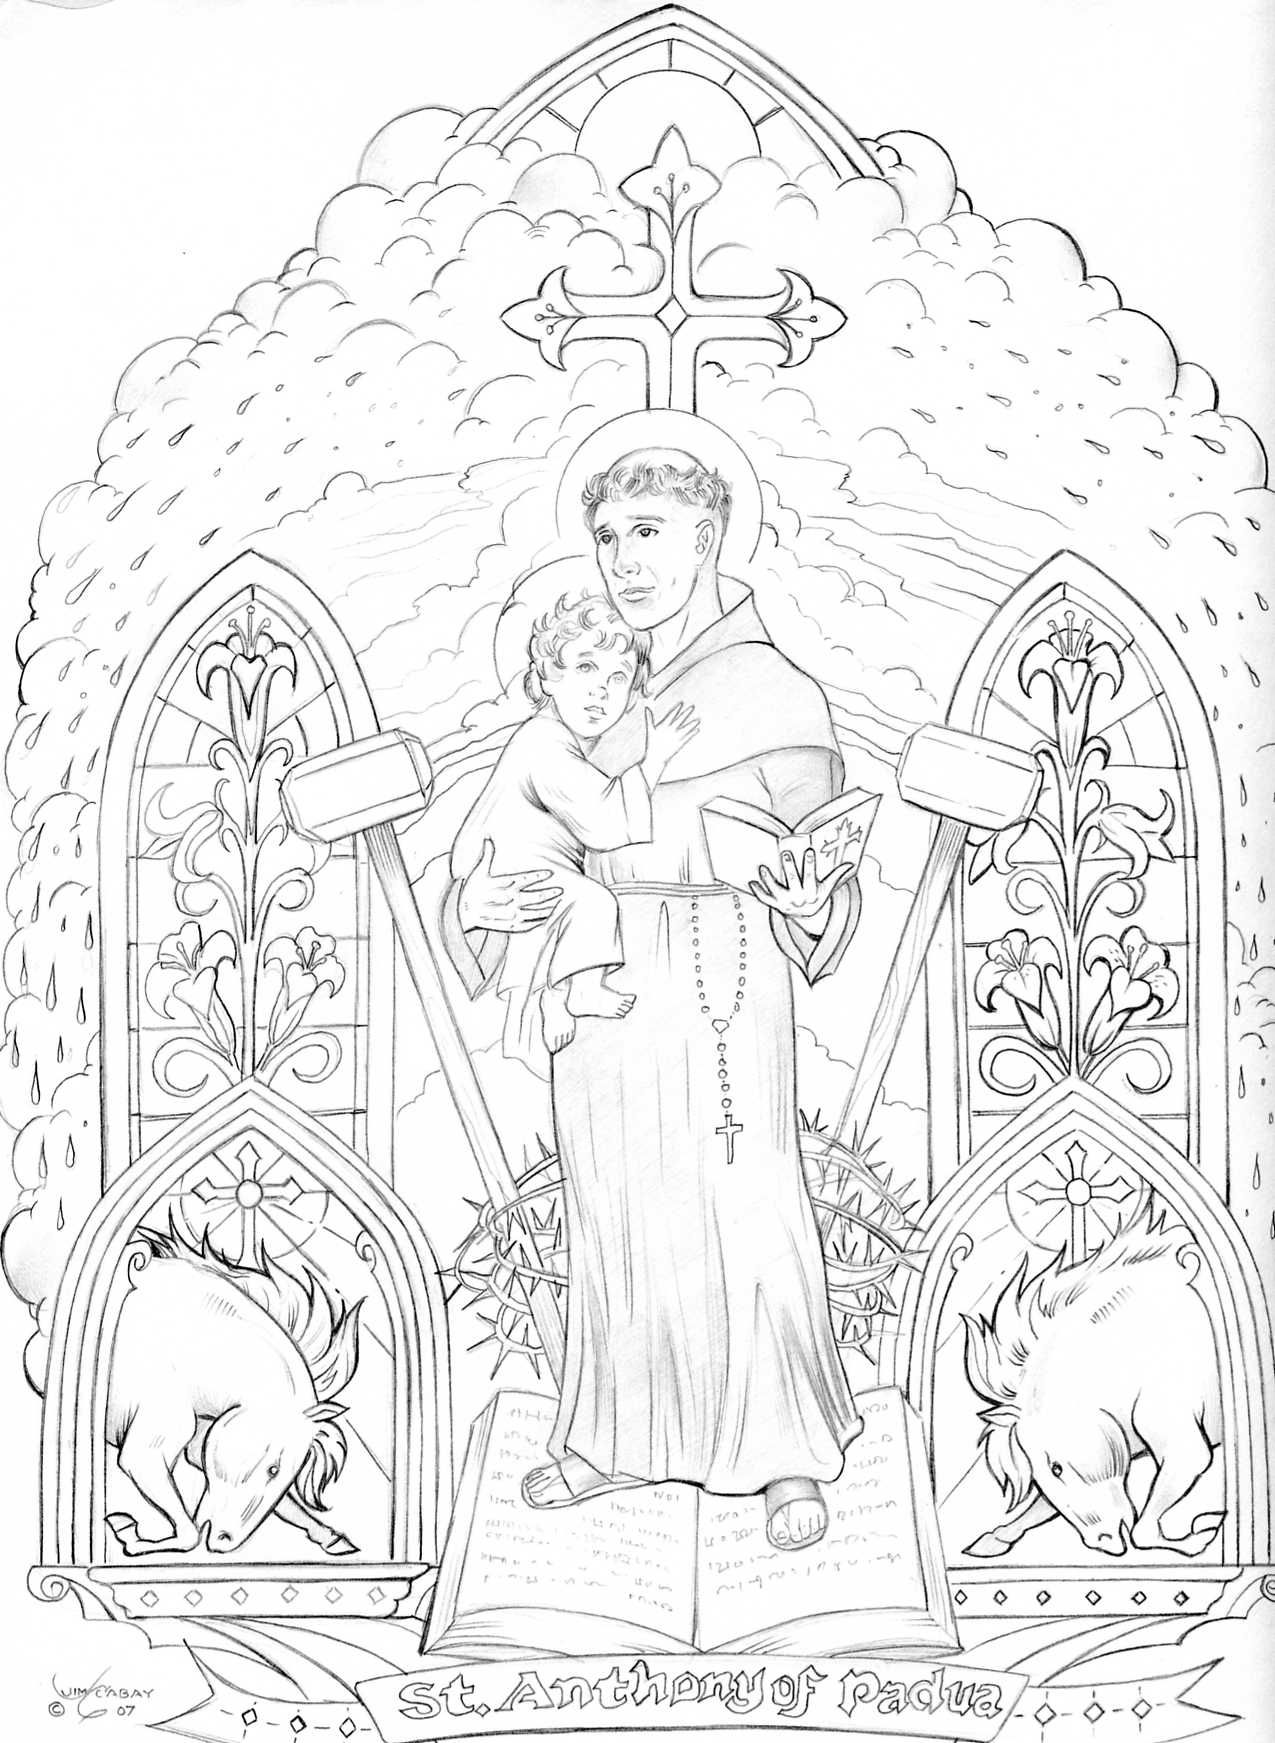 St anthony of padua coloring page religious coloring pages pinterest coloriage religieuse - Coloriage catholique ...